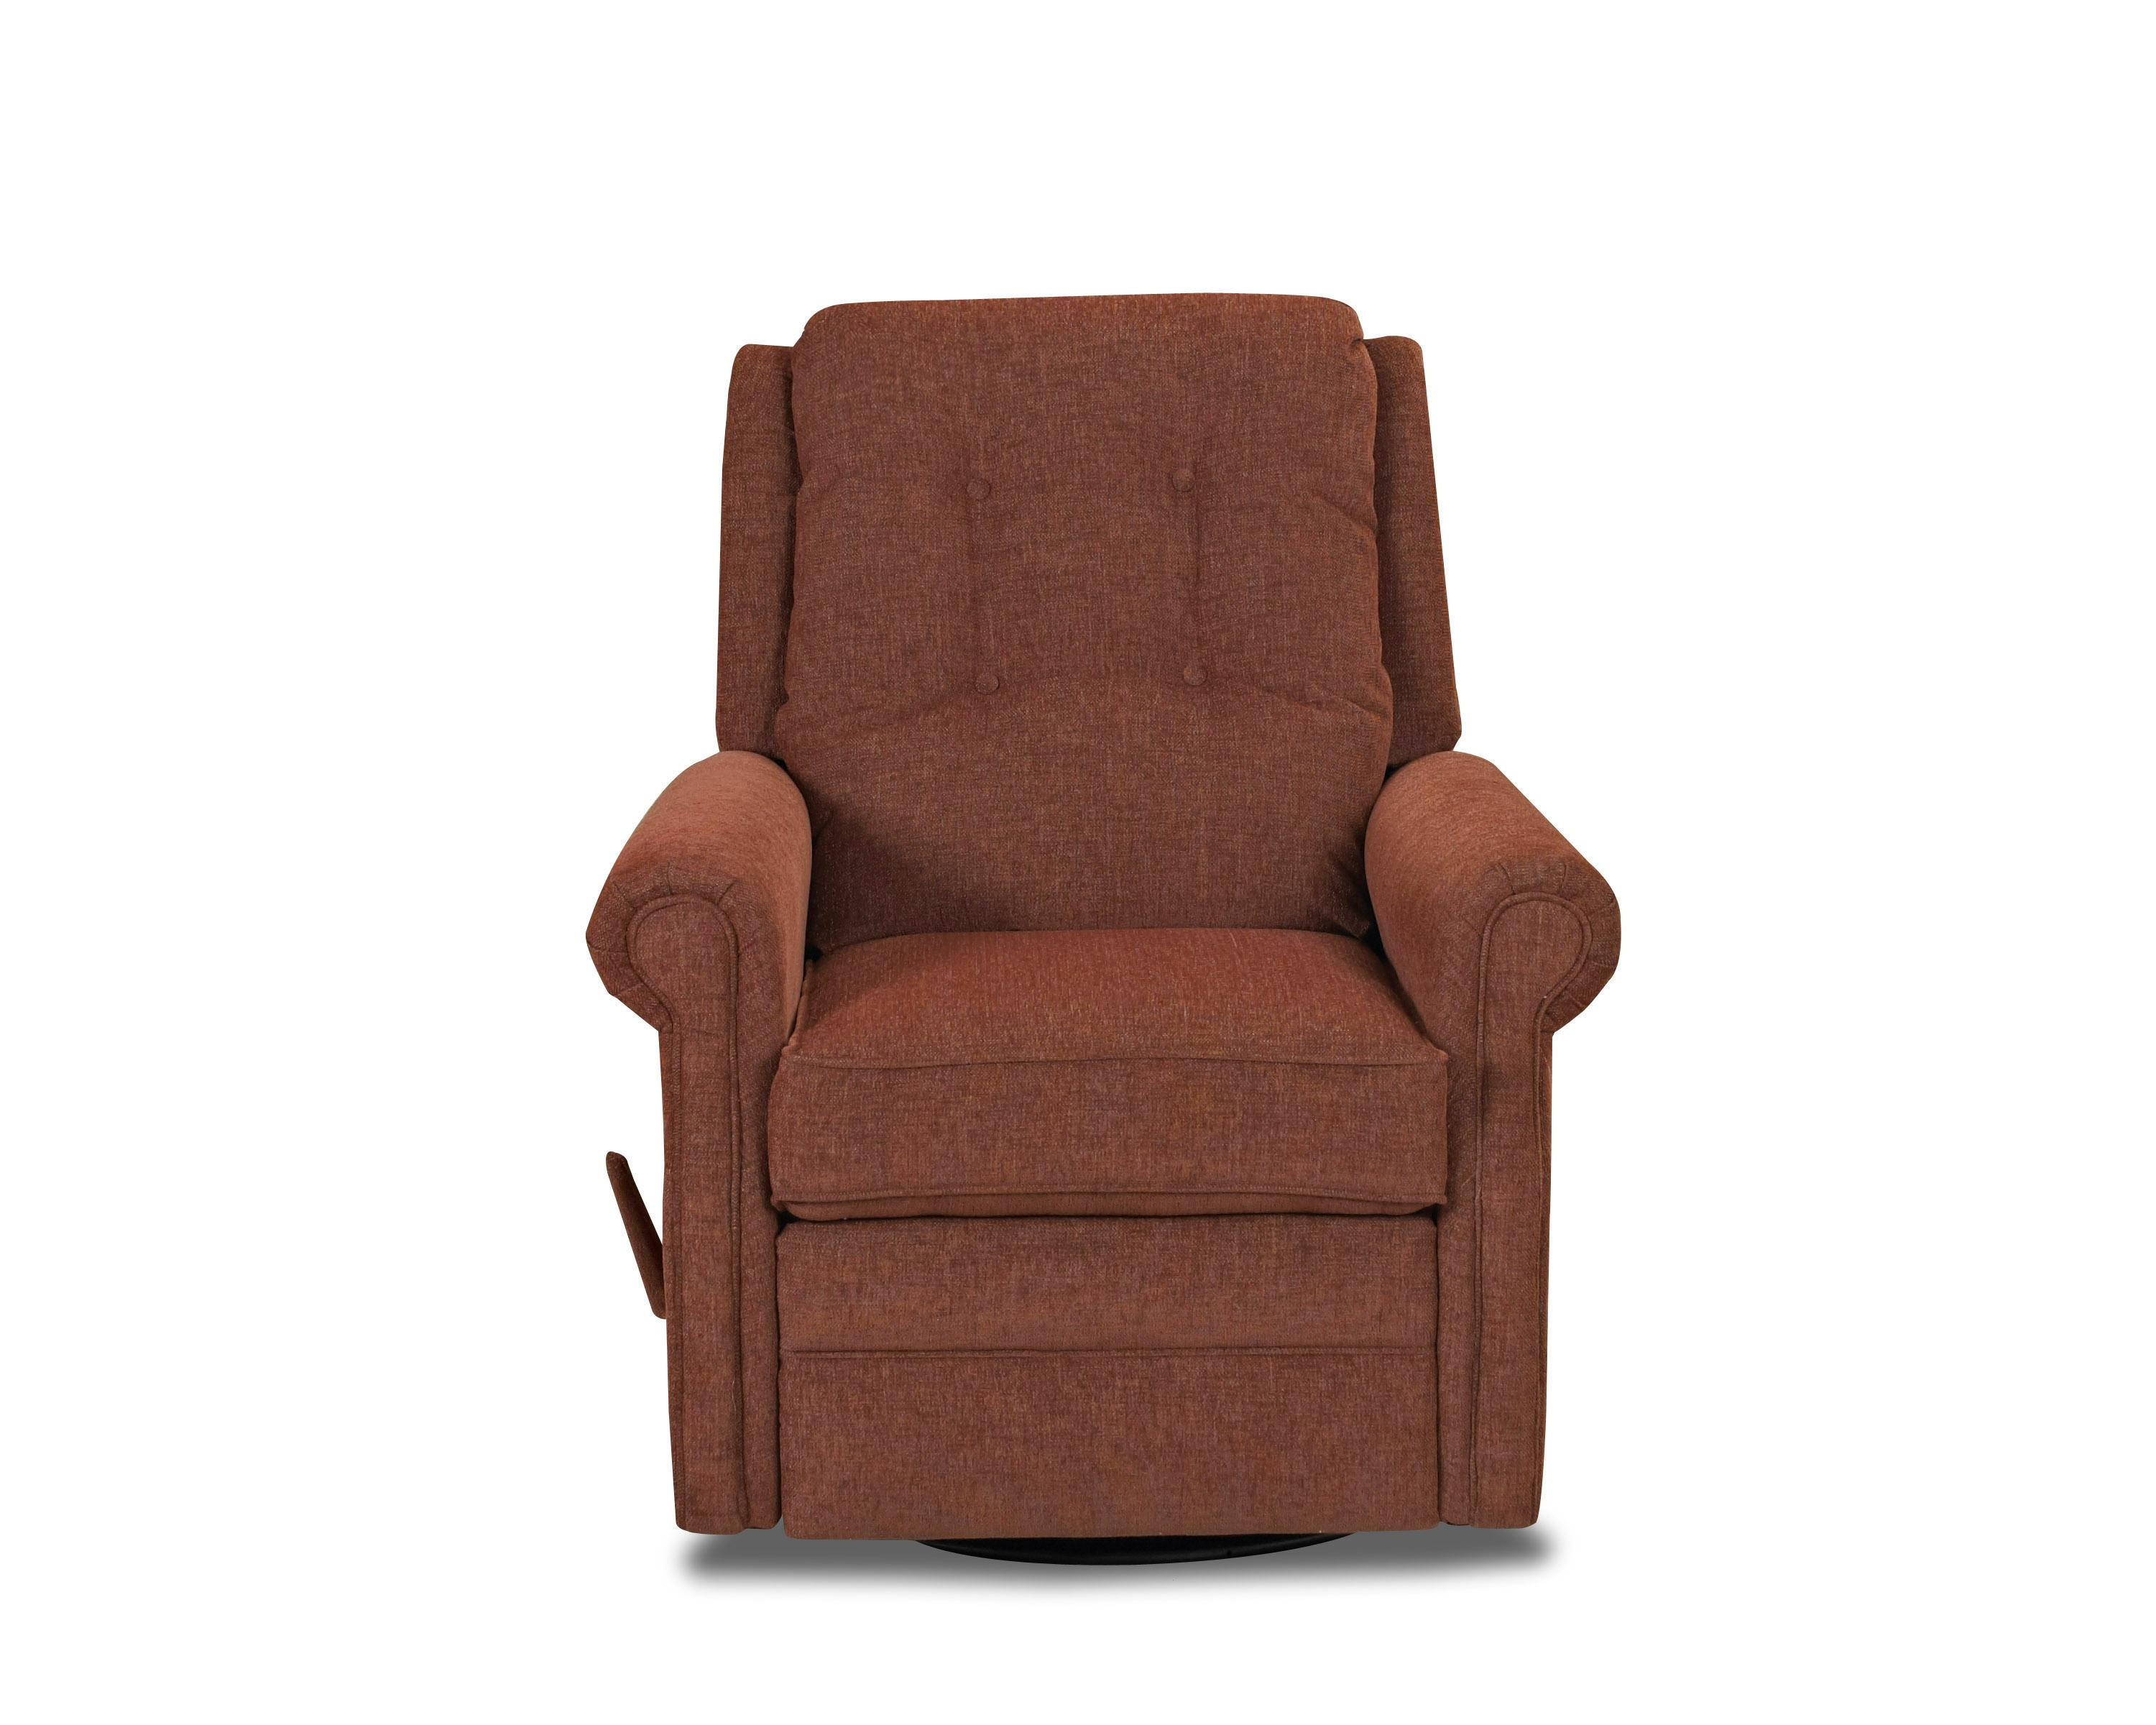 Recliner Rocking Chair Manual Swivel Rocking Reclining Chair